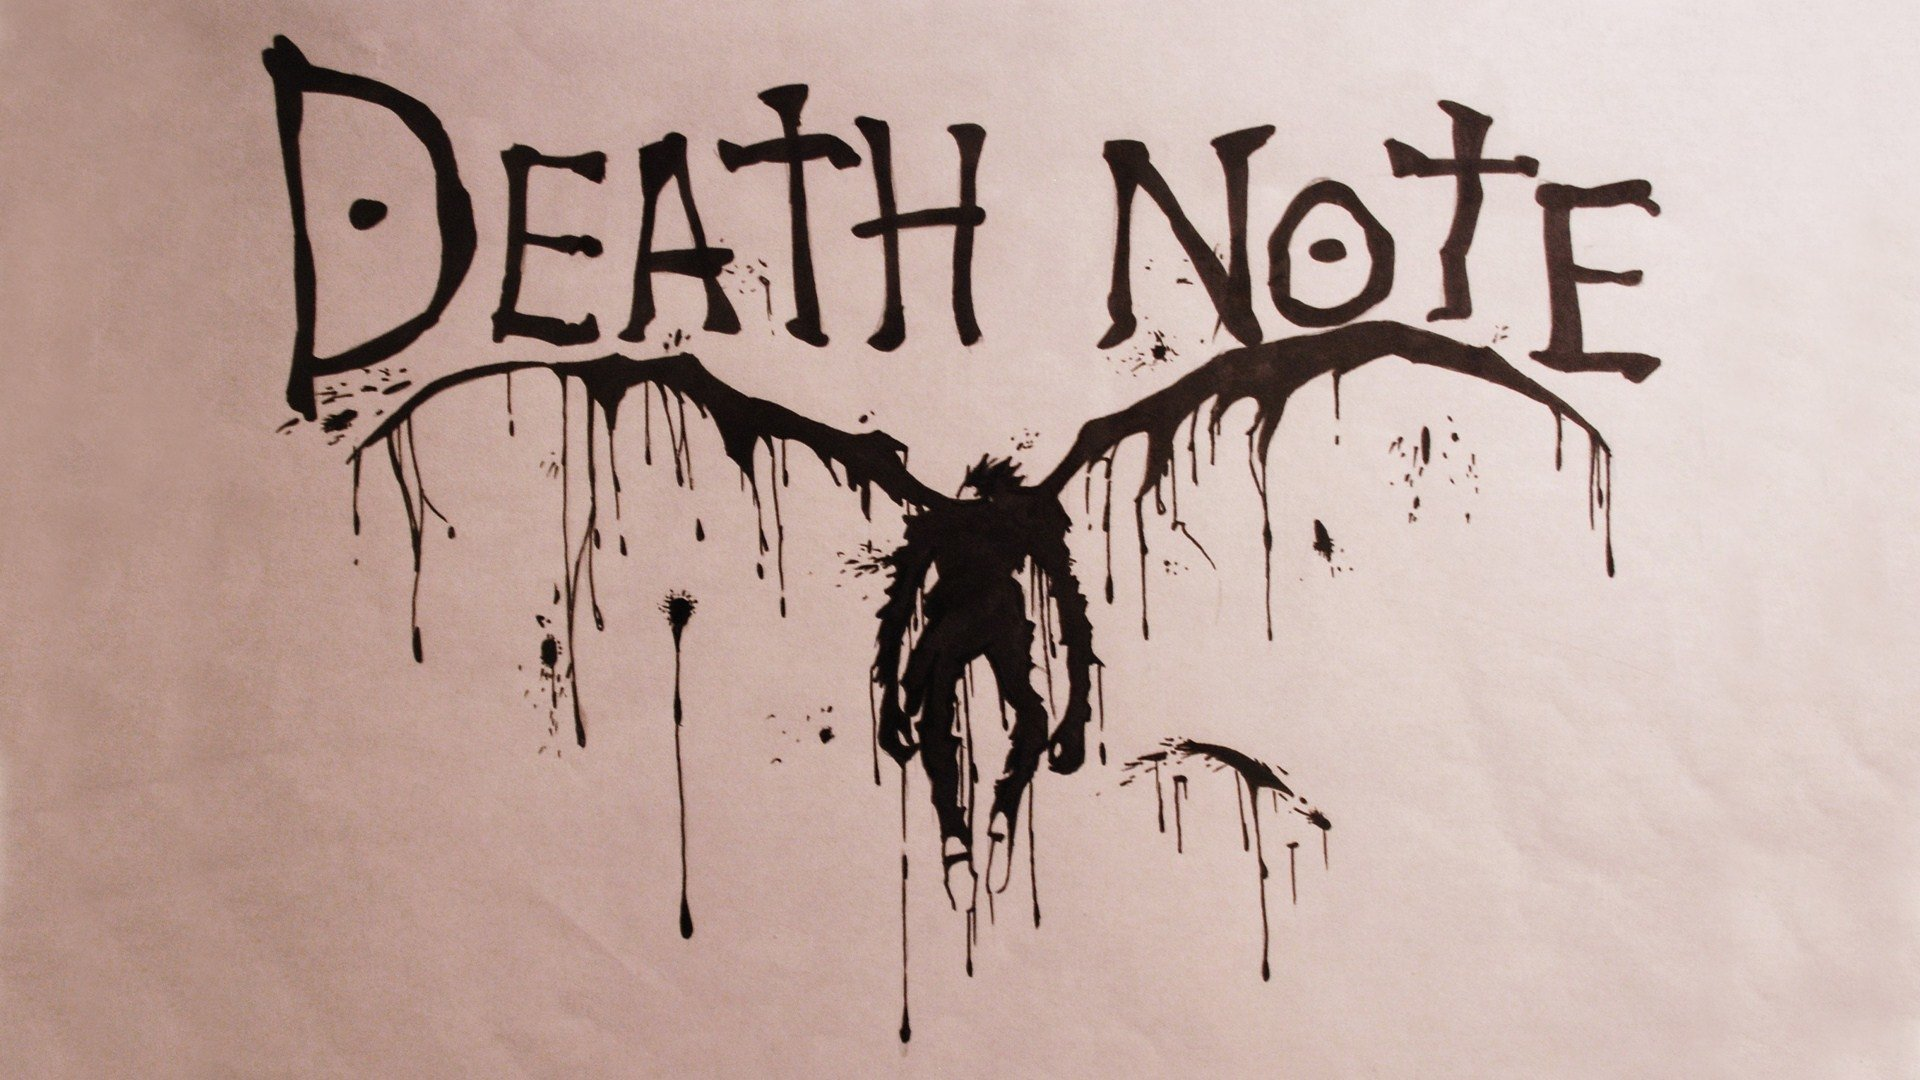 Drawn scythe death note Background 338 Abyss Note Wallpaper